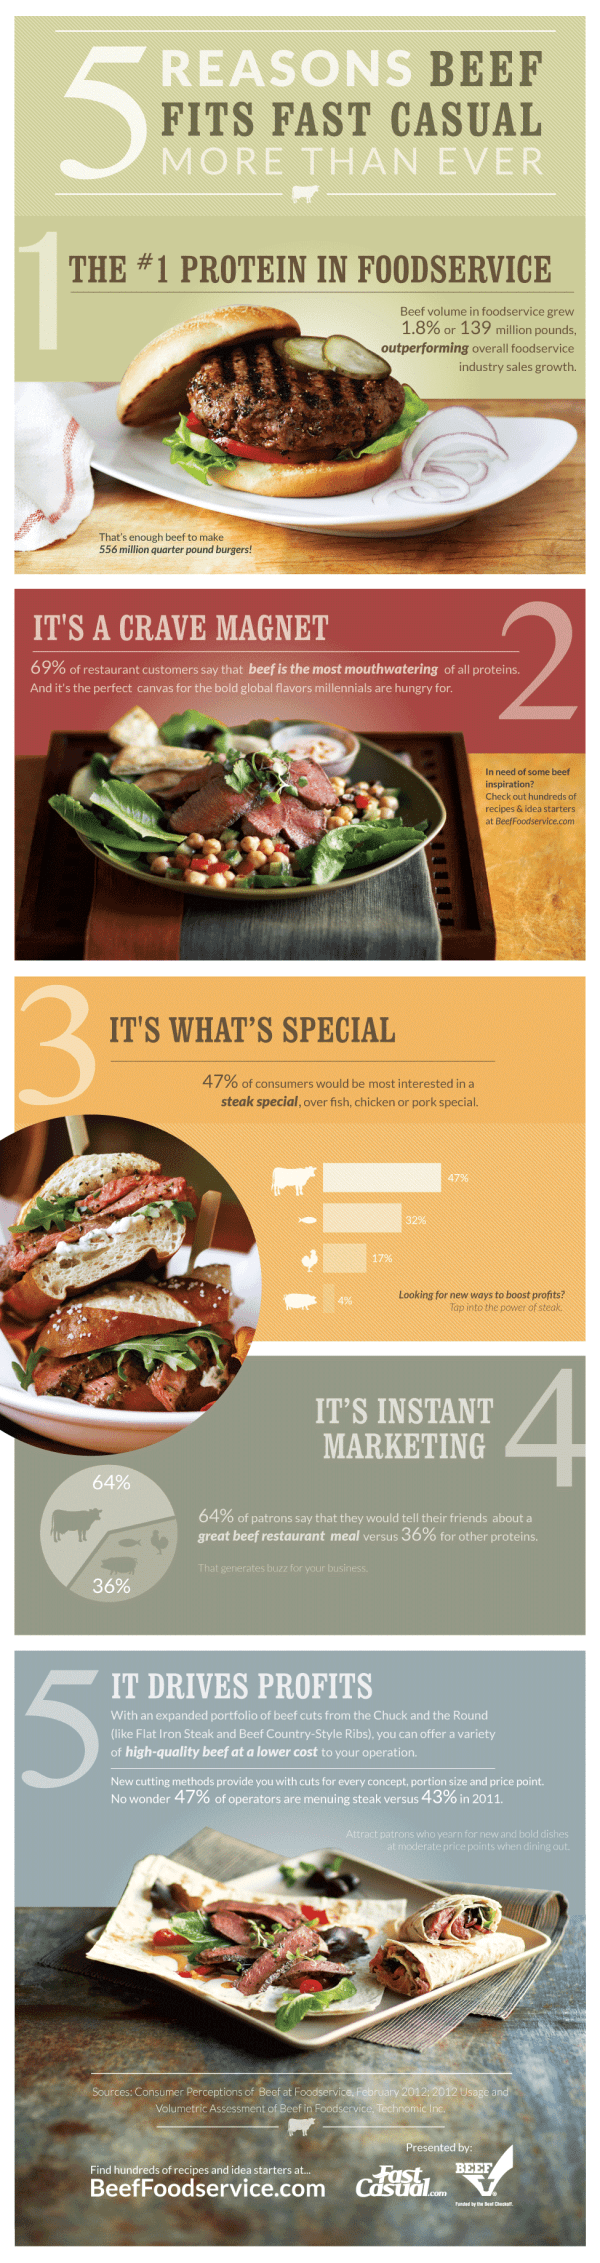 5 Reasons Beef Fits Fast Casual More Than Ever [infographic]